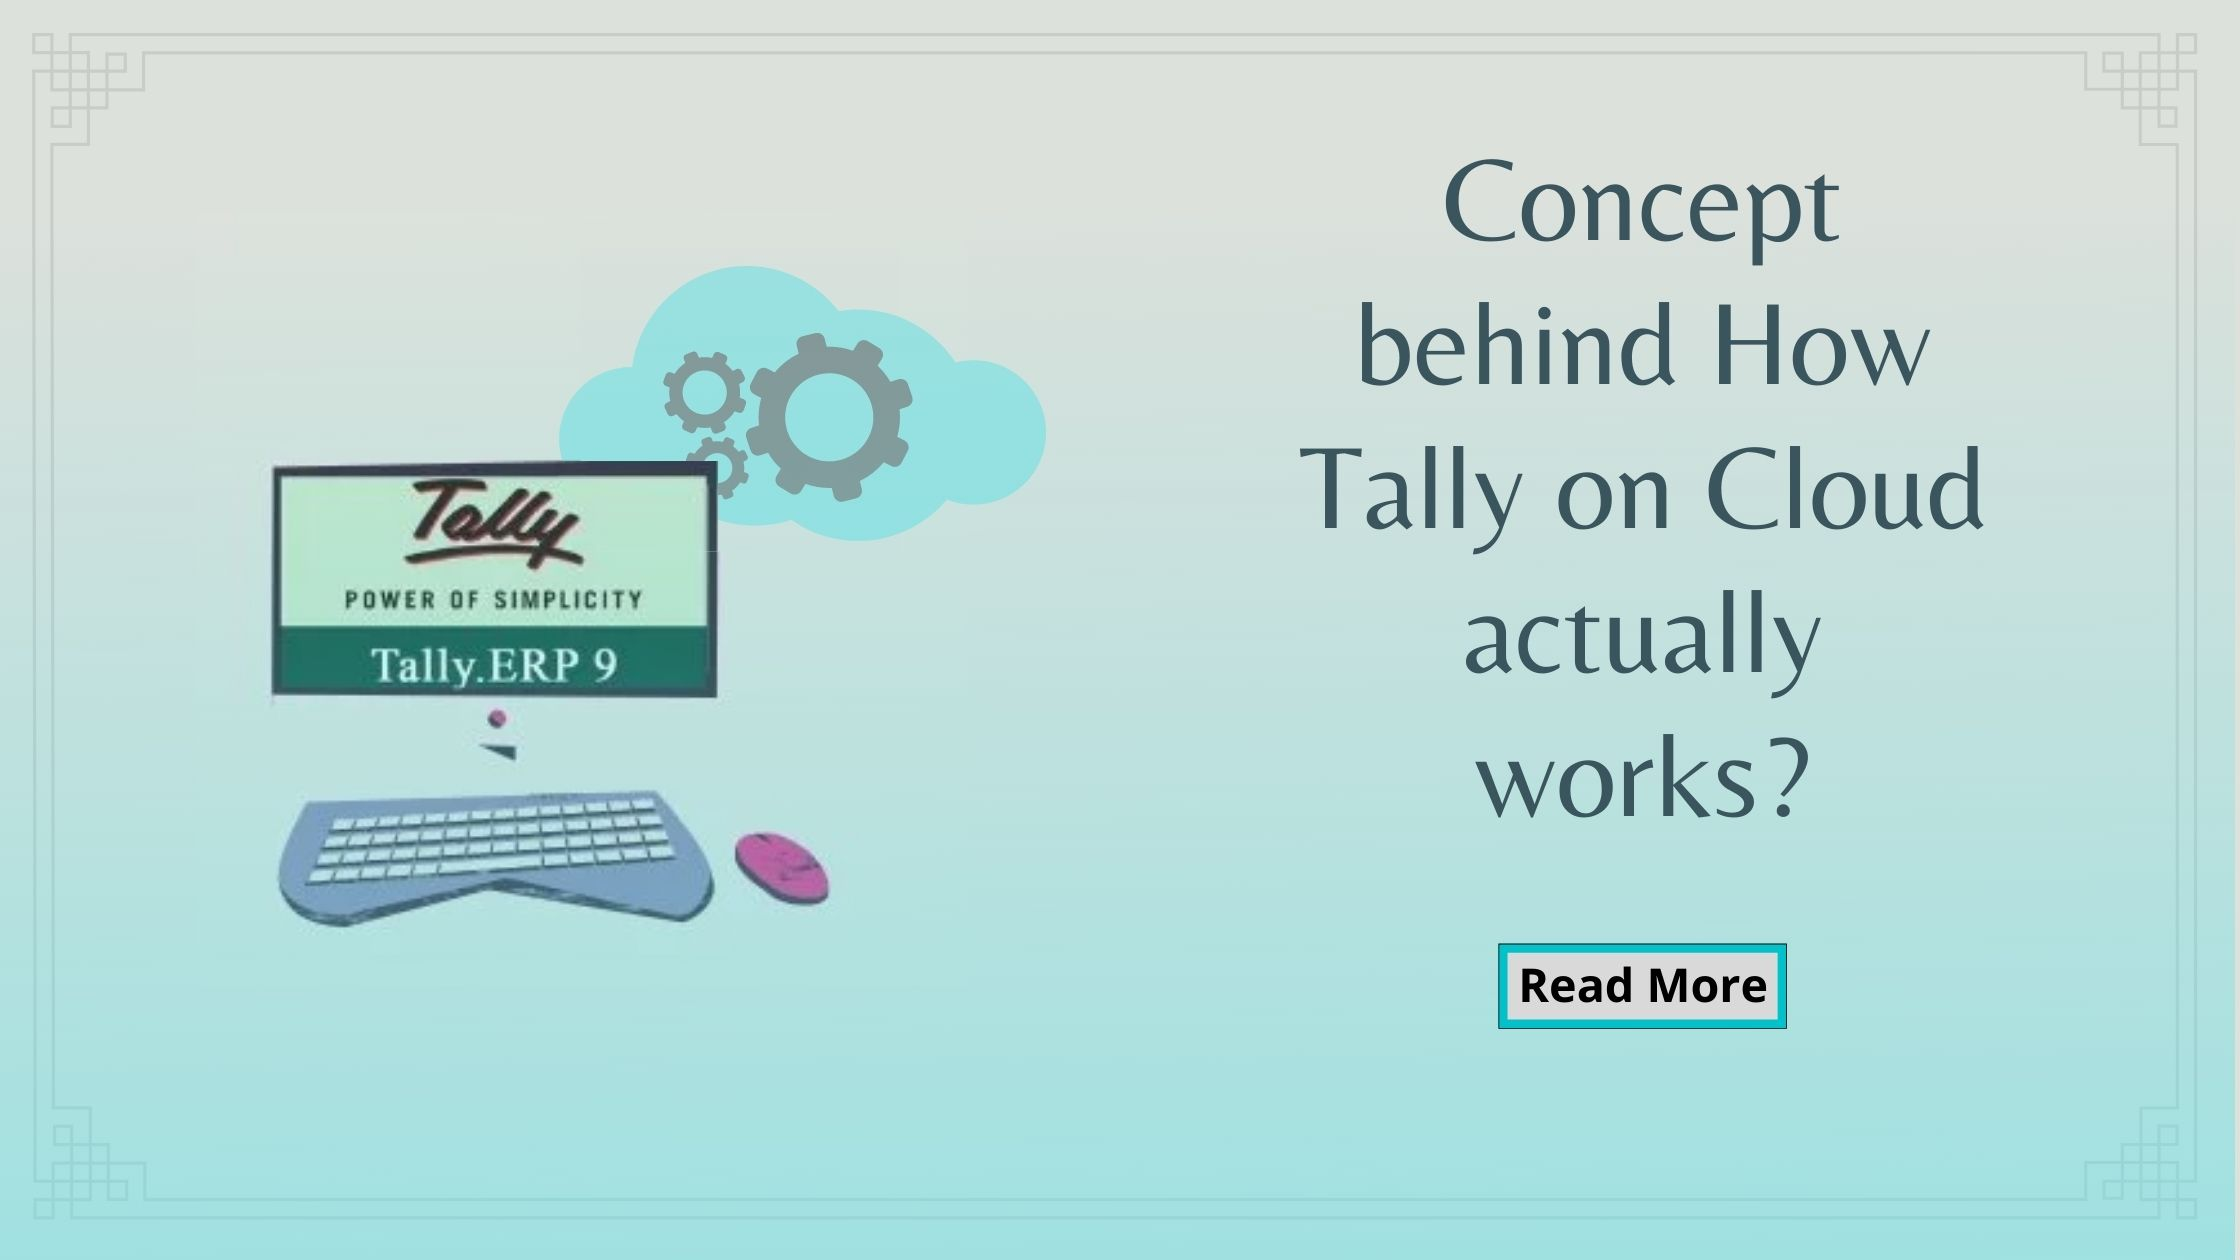 Tally on cloud works